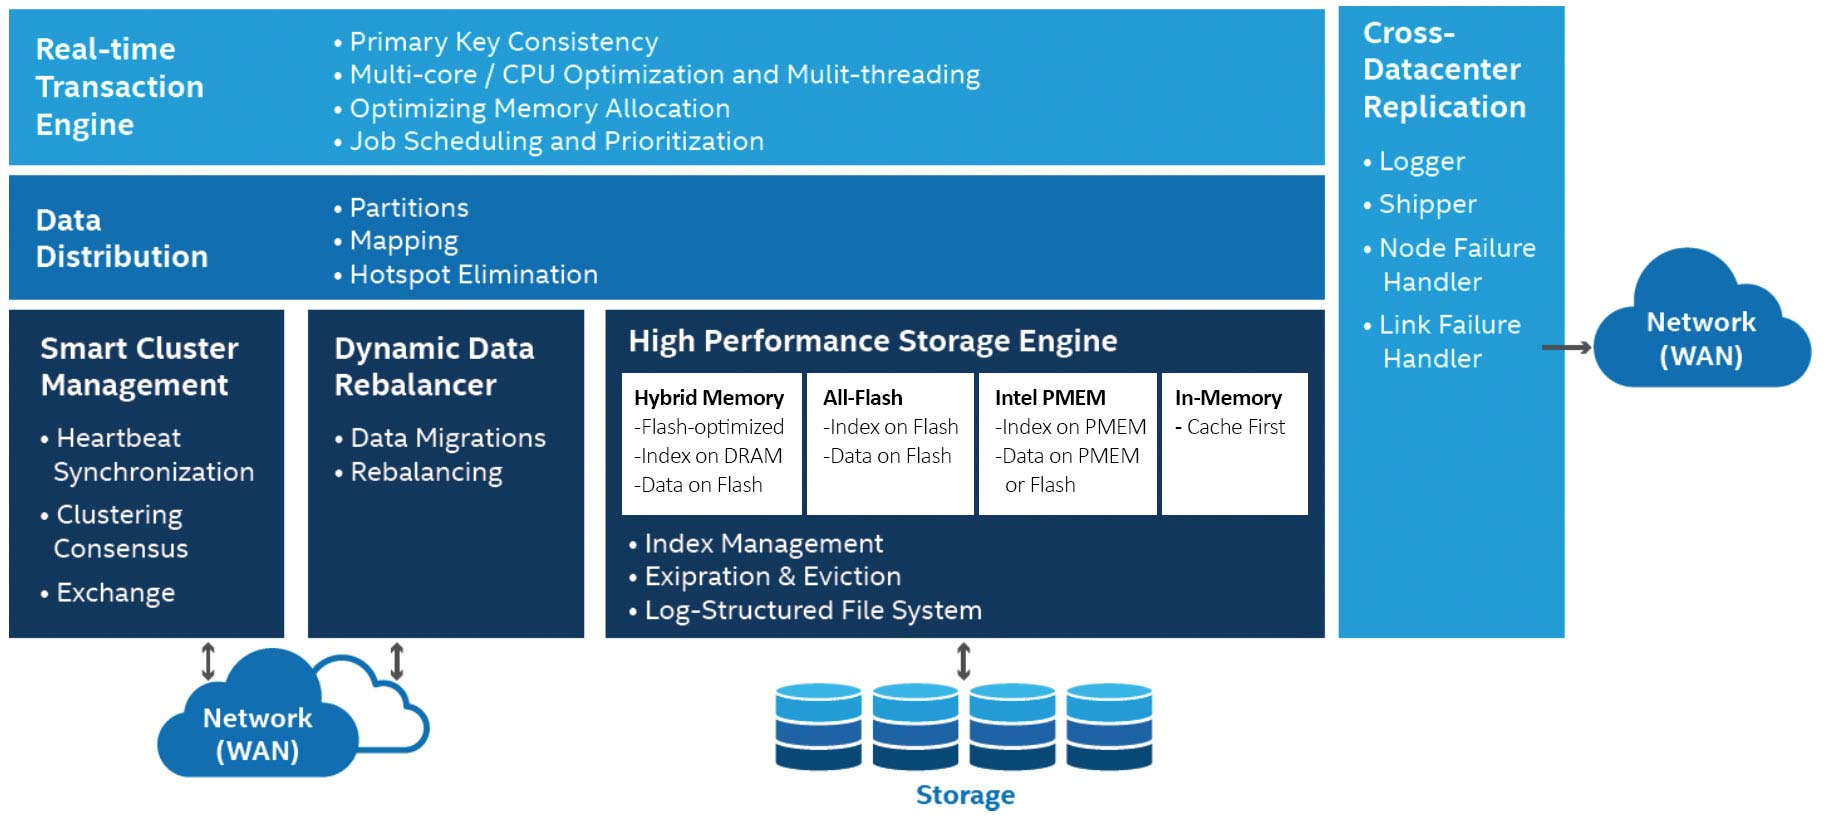 Aerospike 4.8 with Intel® Optane™ DC persistent memory